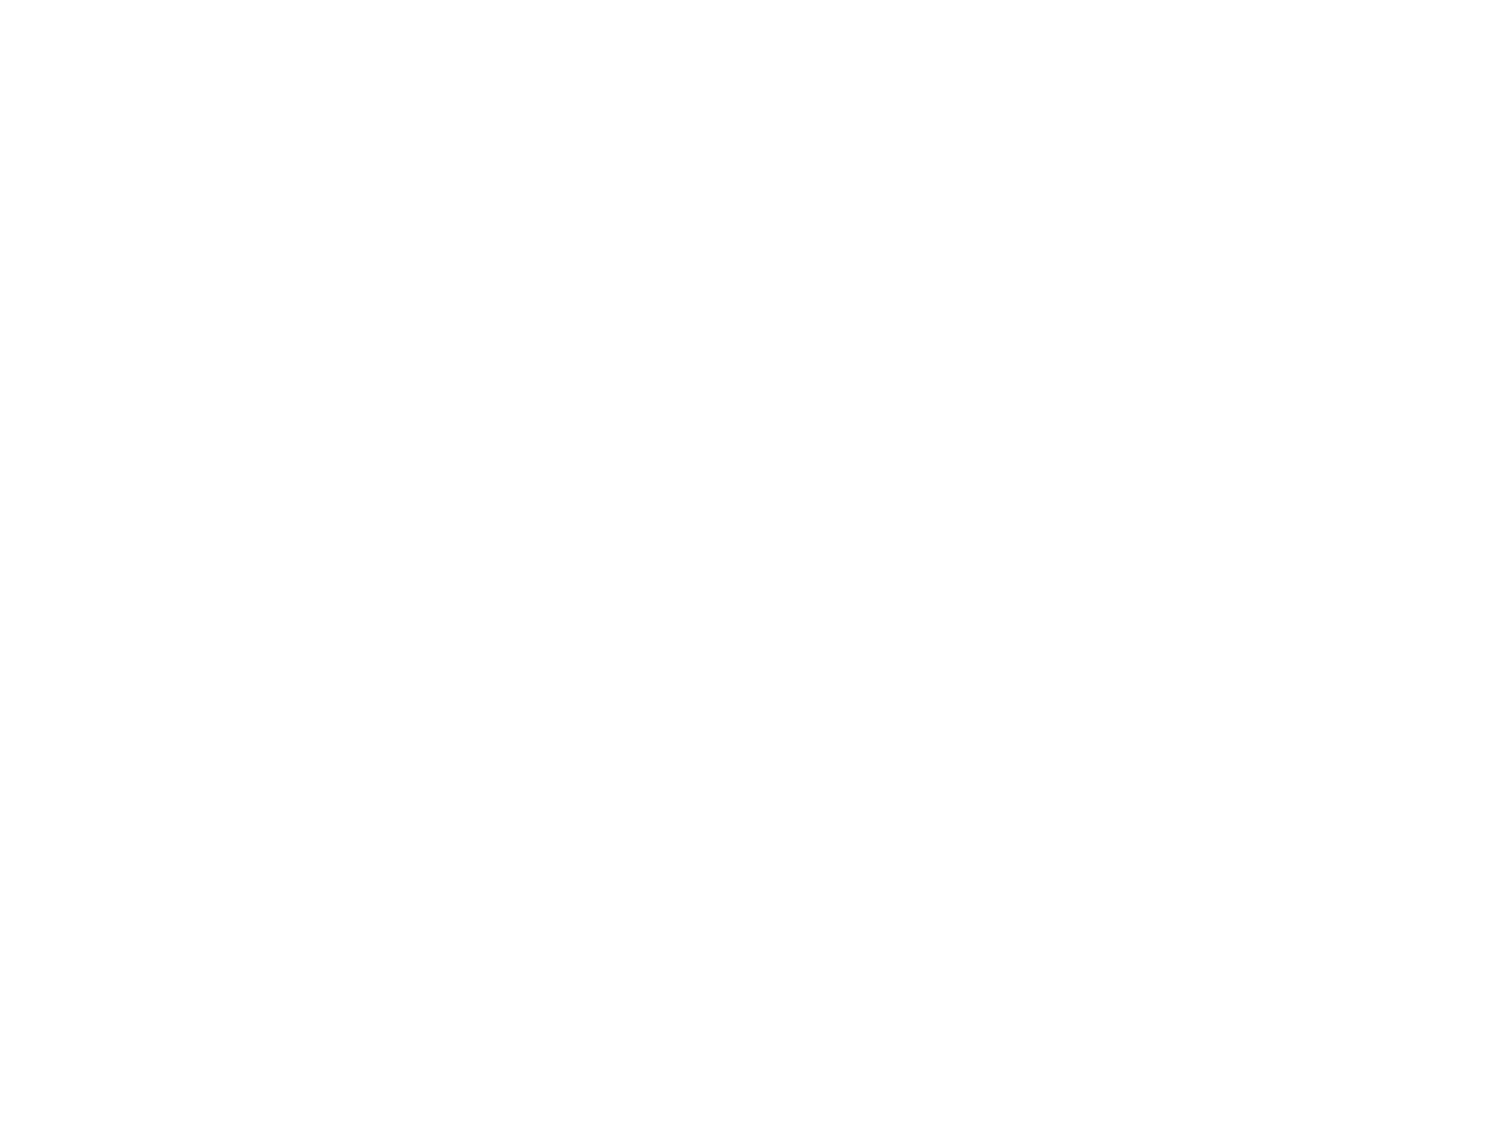 SMALL BUSINESS FOR THE REST OF US